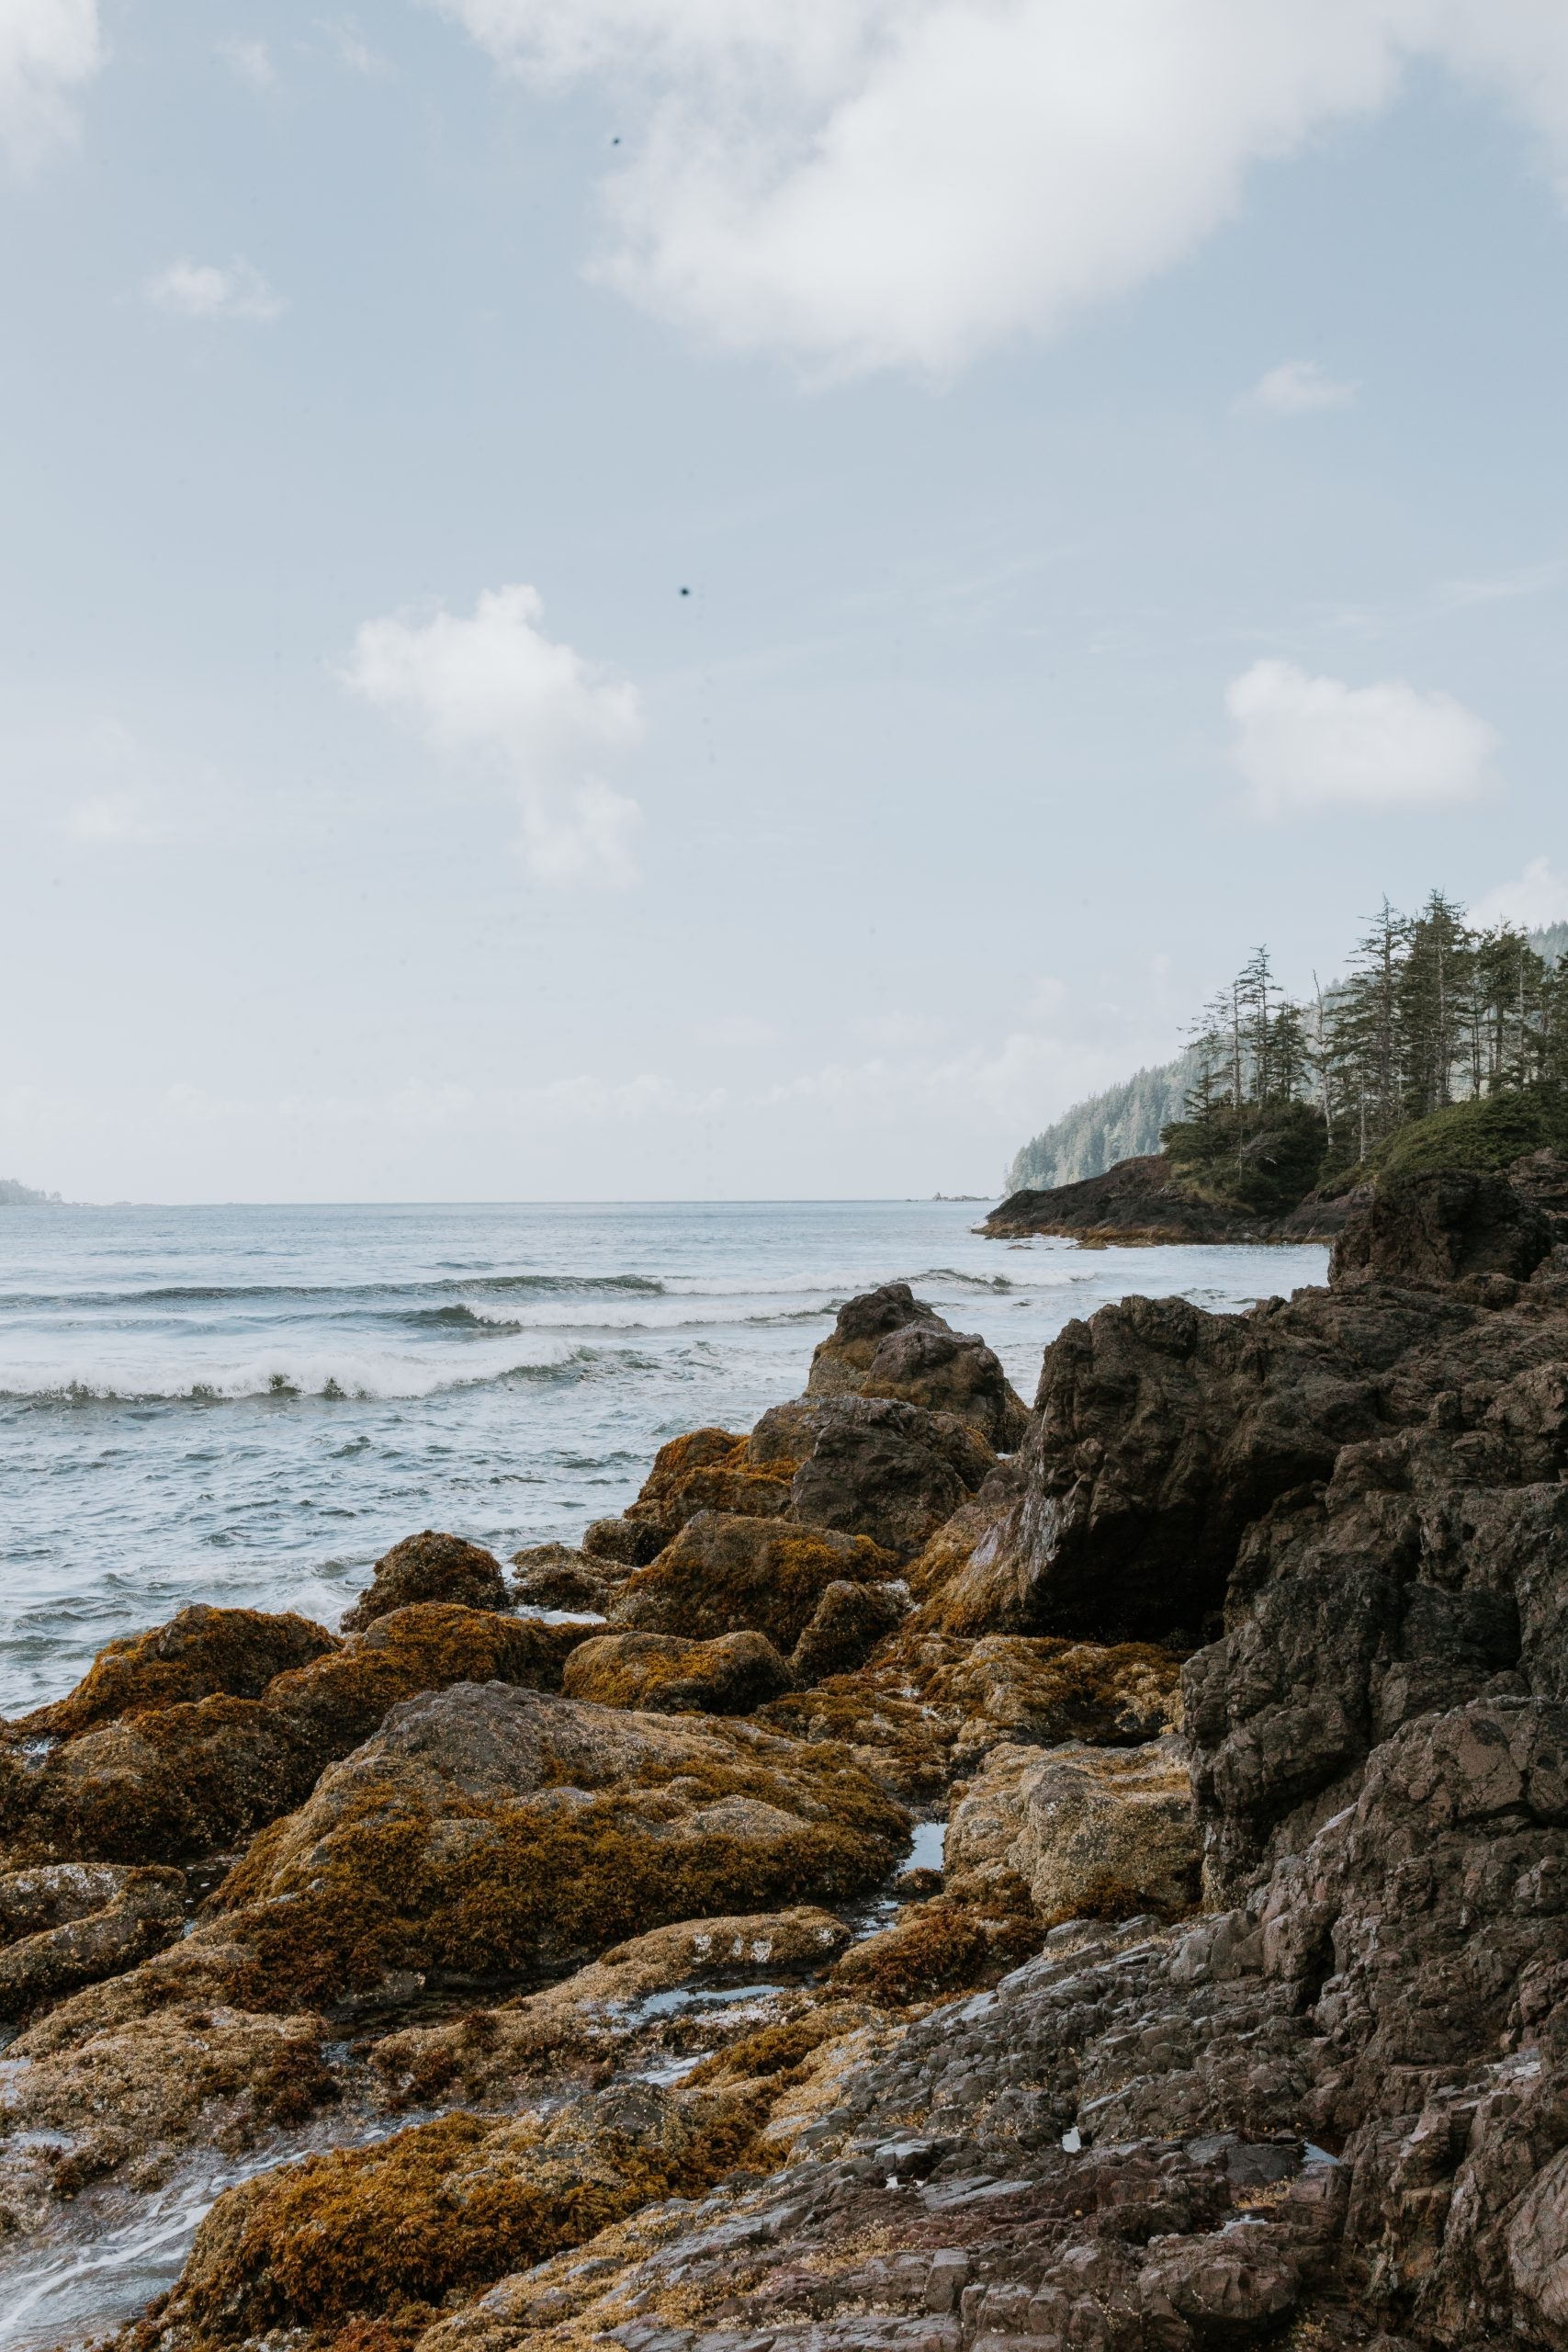 The Trek To San Josef Bay. All You Need To Know About Visiting San Josef Bay Near Cape Scott on Vancouer Island. It's A Must See!